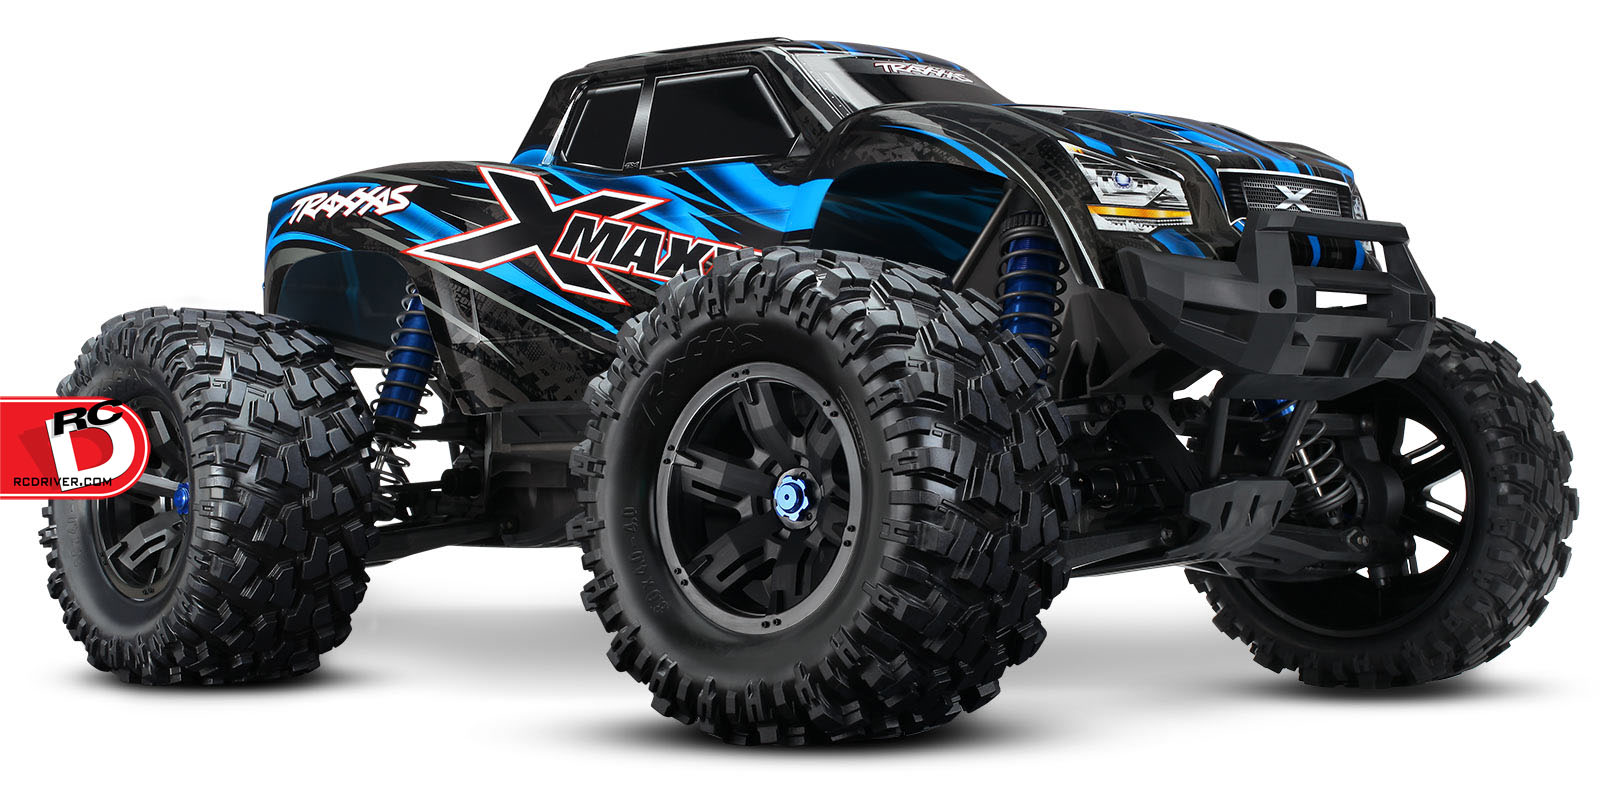 It's HUGE – The X-Maxx Electric Monster Truck from Traxxas